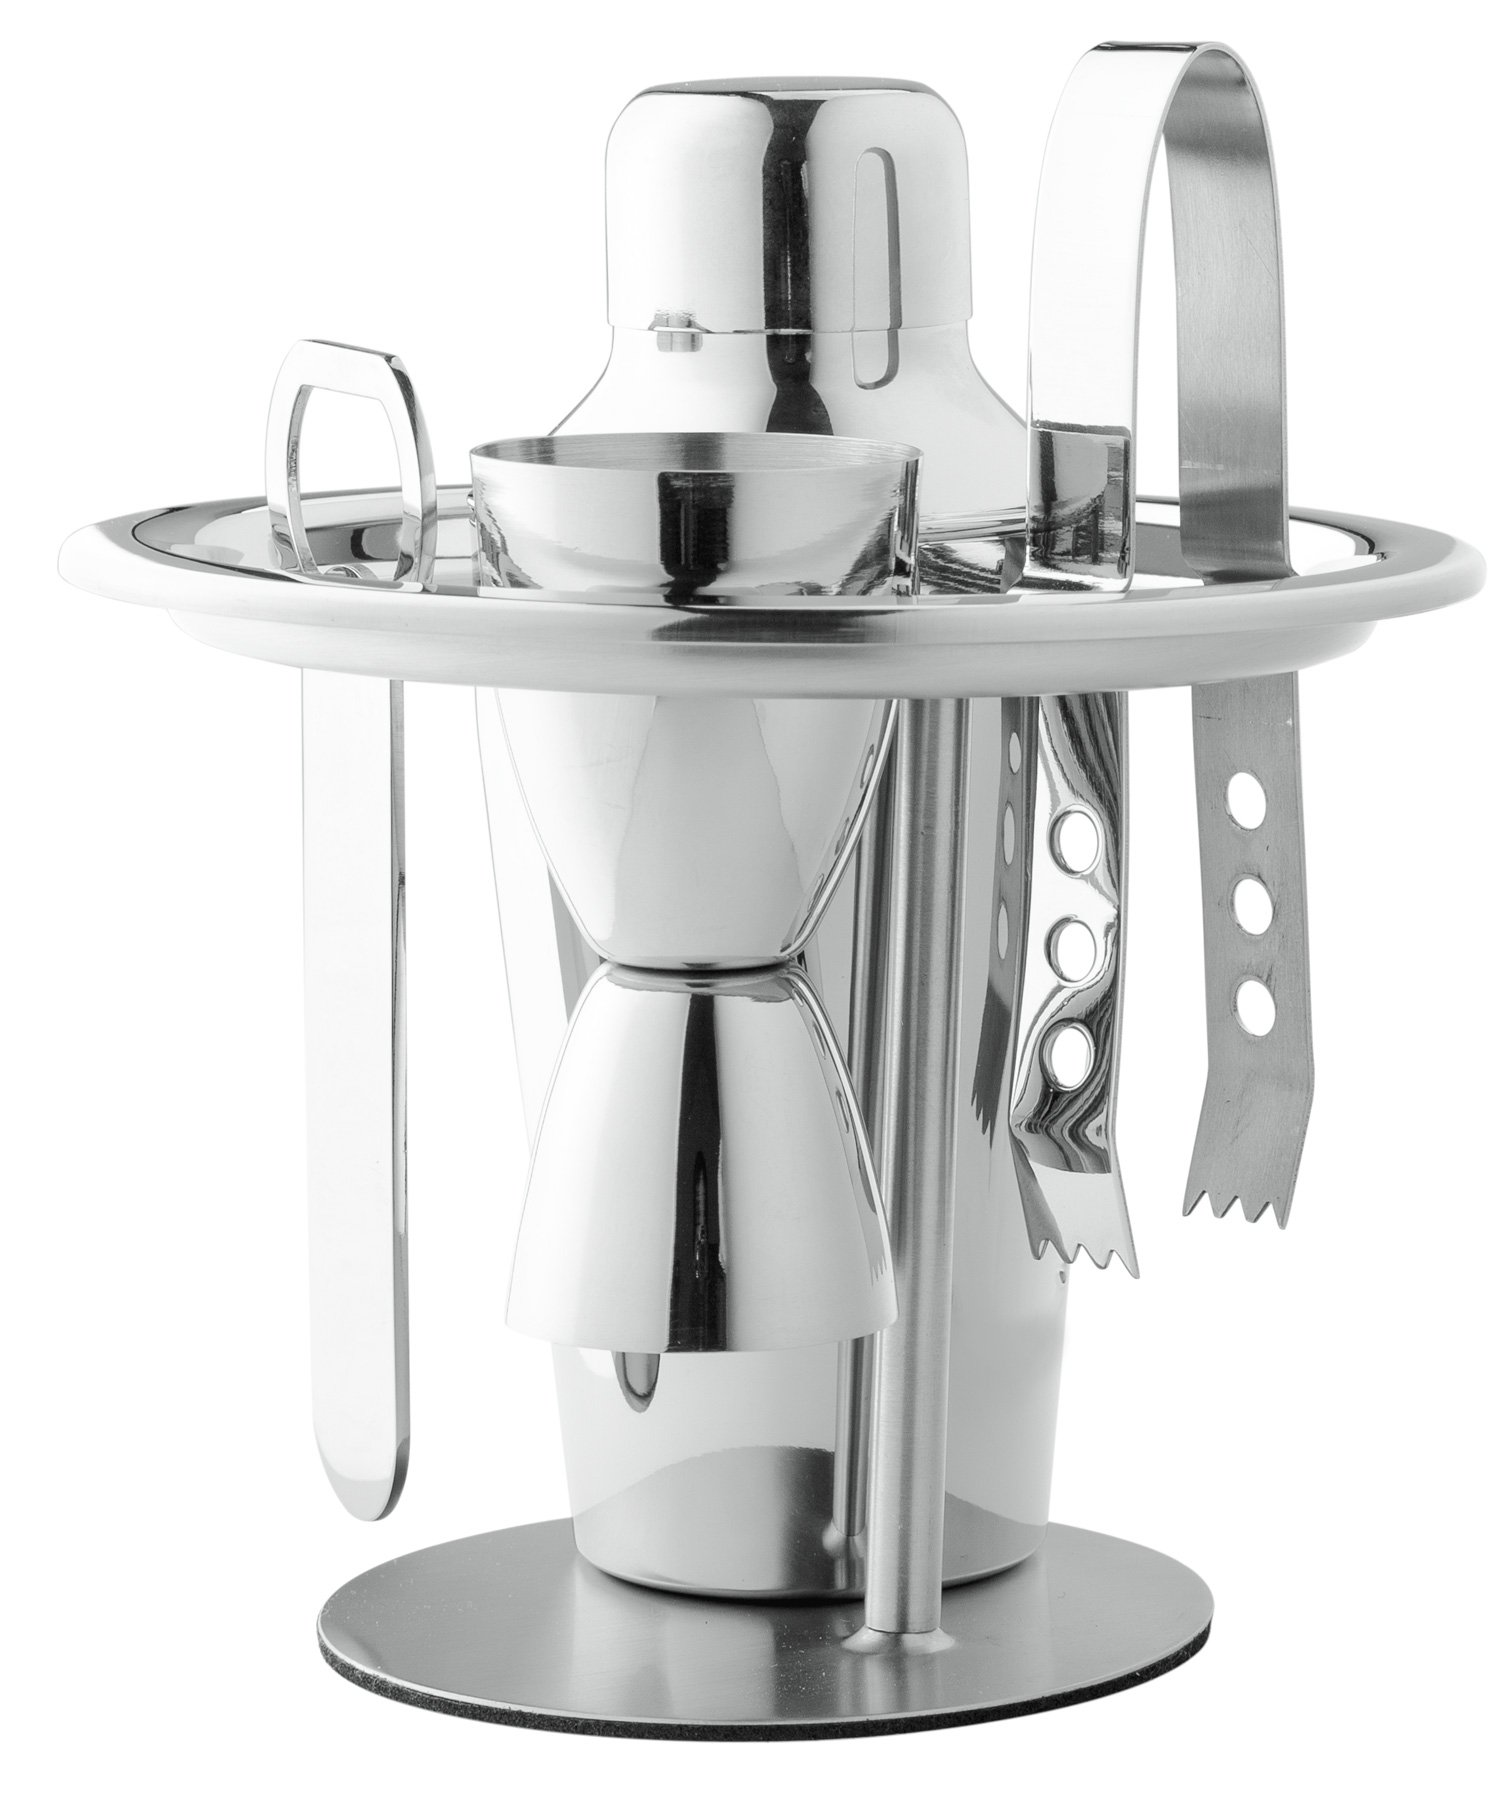 Chef's Star 6 Piece Stainless Steel Compact Bar Set - Includes - Ice Bucket Cocktail Shaker Set - Martini Shaker Set Bar Tool Stand Bottle Opener Double Jigger Ice Tong